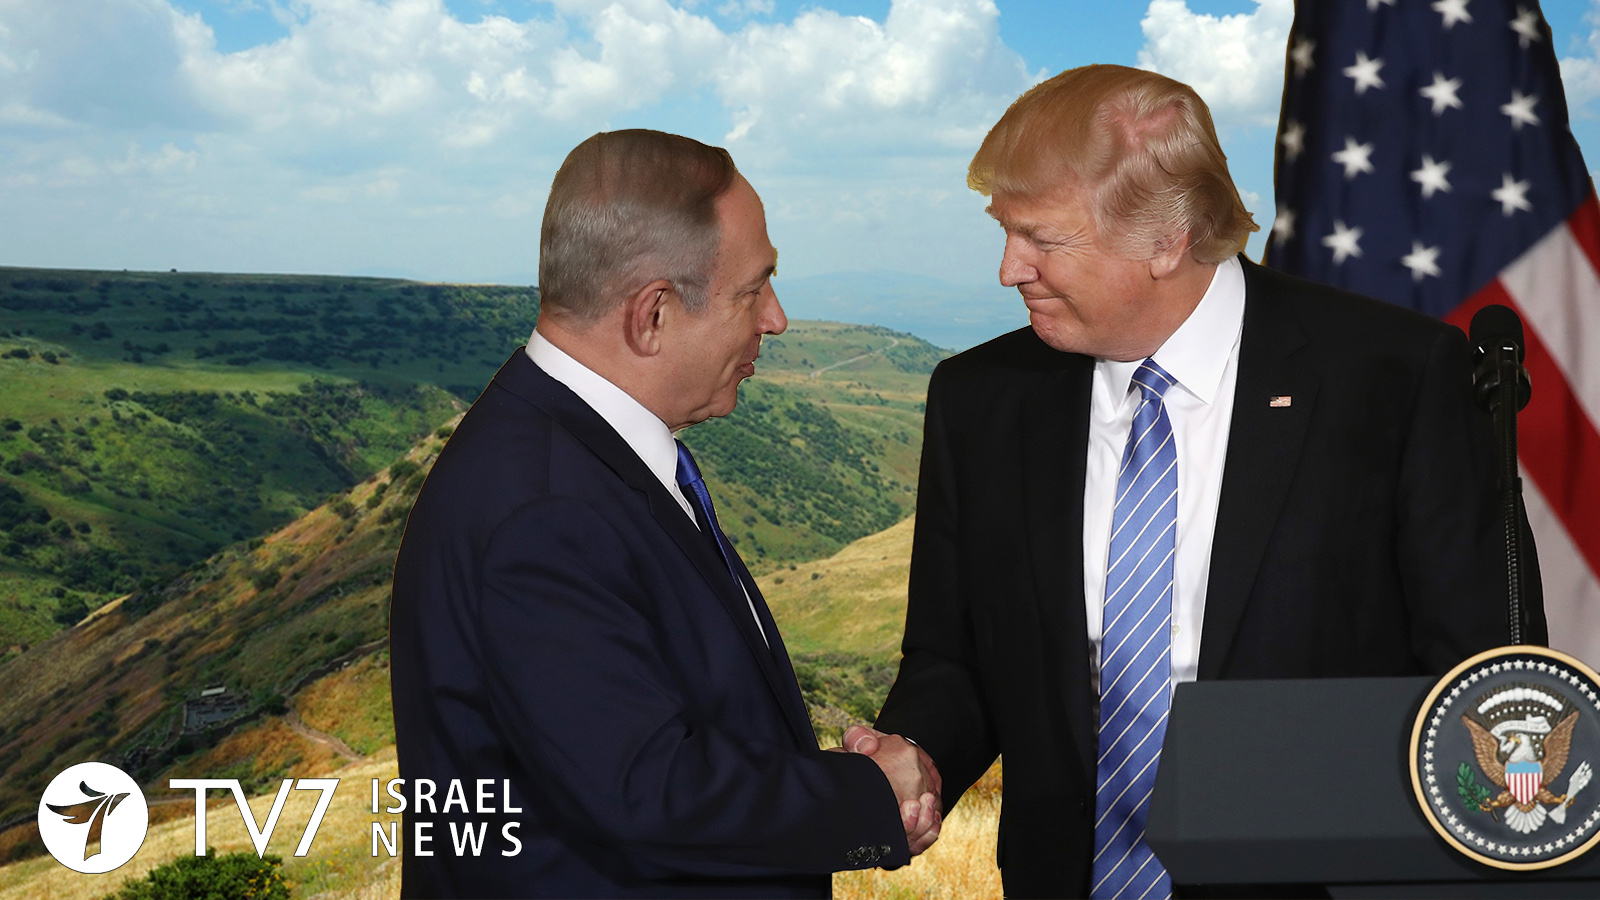 Trump and Netanyahu - U.S recognizes Israel's sovereignty over Golan Heights